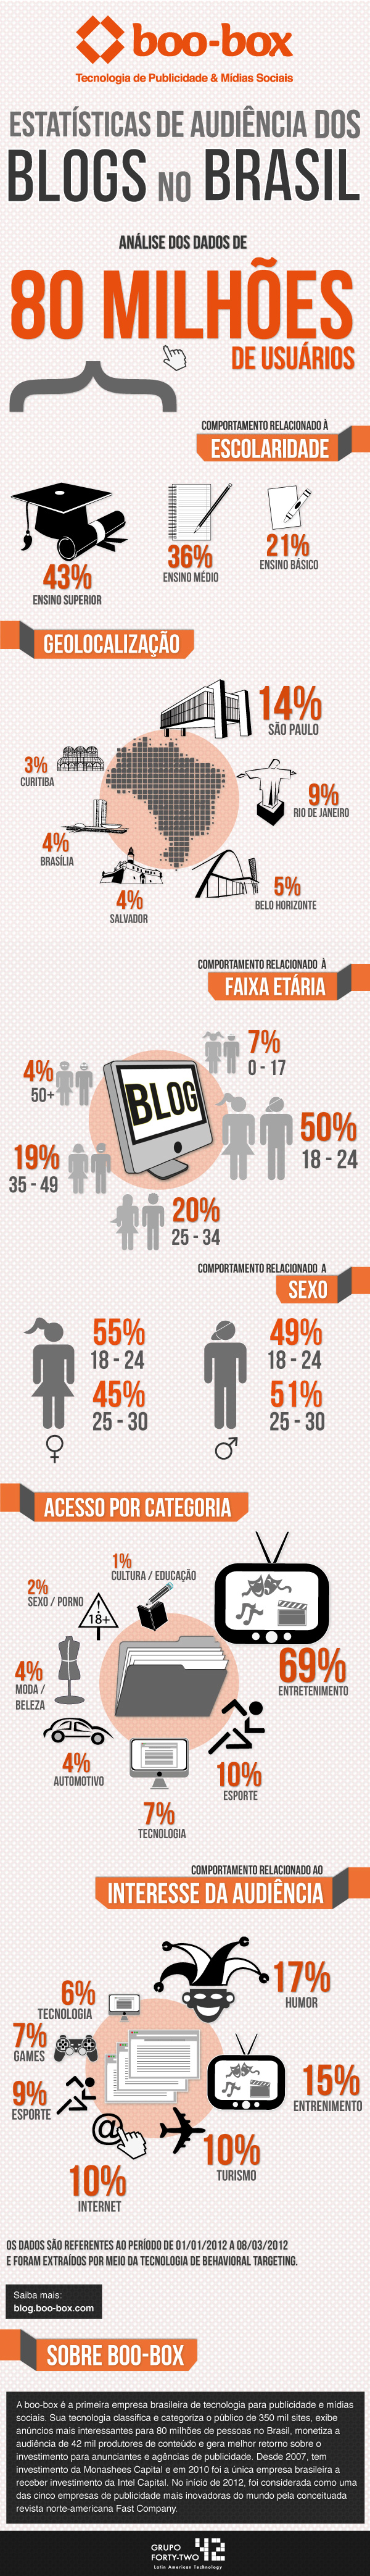 #Exclusivo. Infografico sobre audiencia dos blogs no Brasil. #midiassociais #marketingdigital